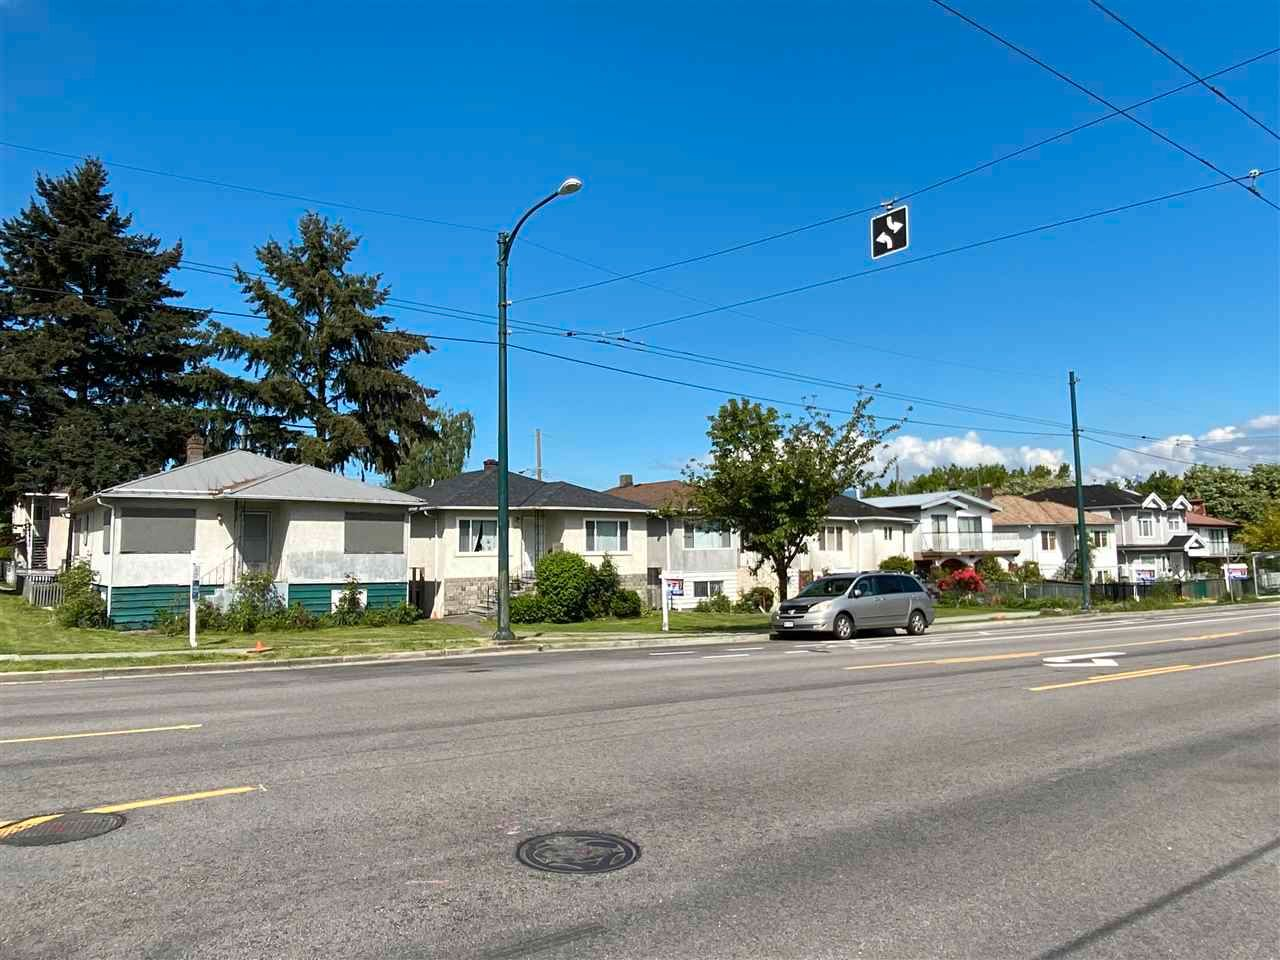 Photo 4: Photos: 875 NANAIMO Street in Vancouver: Hastings House for sale (Vancouver East)  : MLS®# R2567915